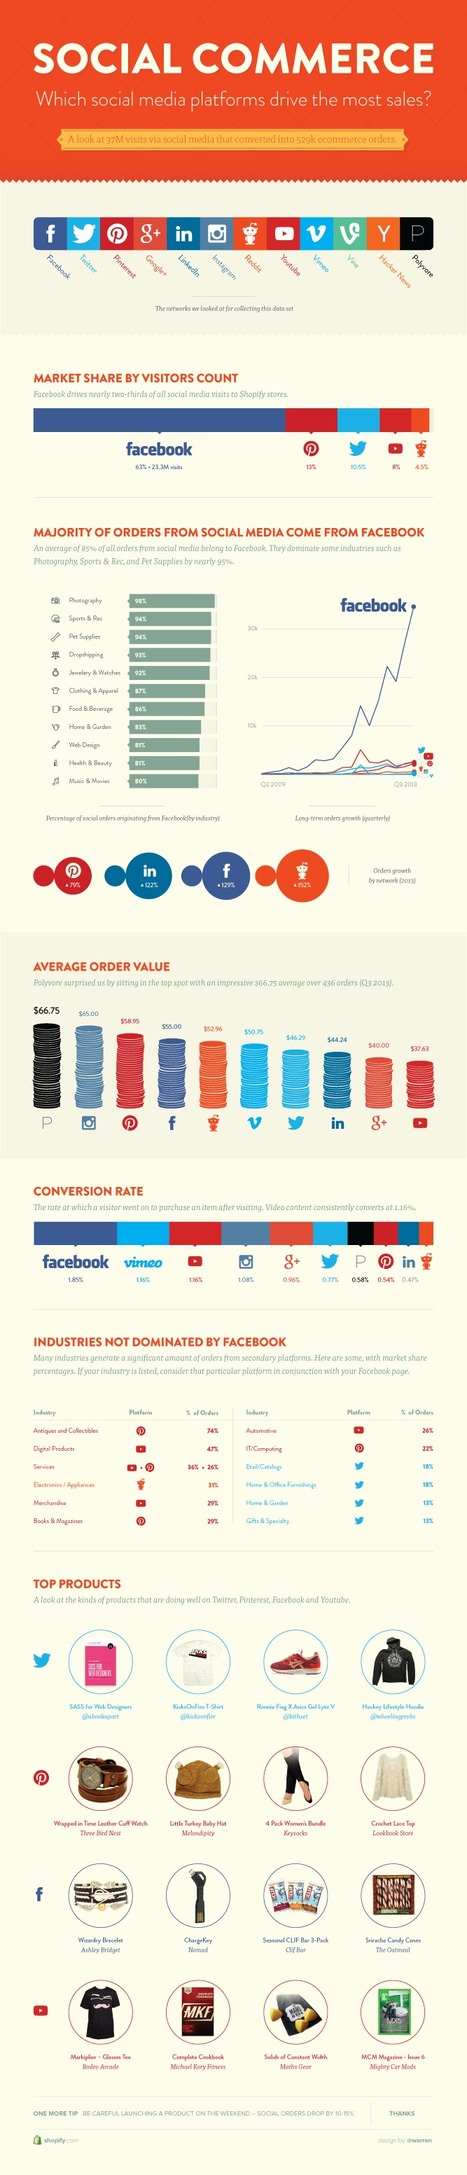 Social Commerce: Which Social Media Platforms Drive the Most Sales? [INFOGRAPHIC] - The Conversion Scientist | Infofree | Scoop.it